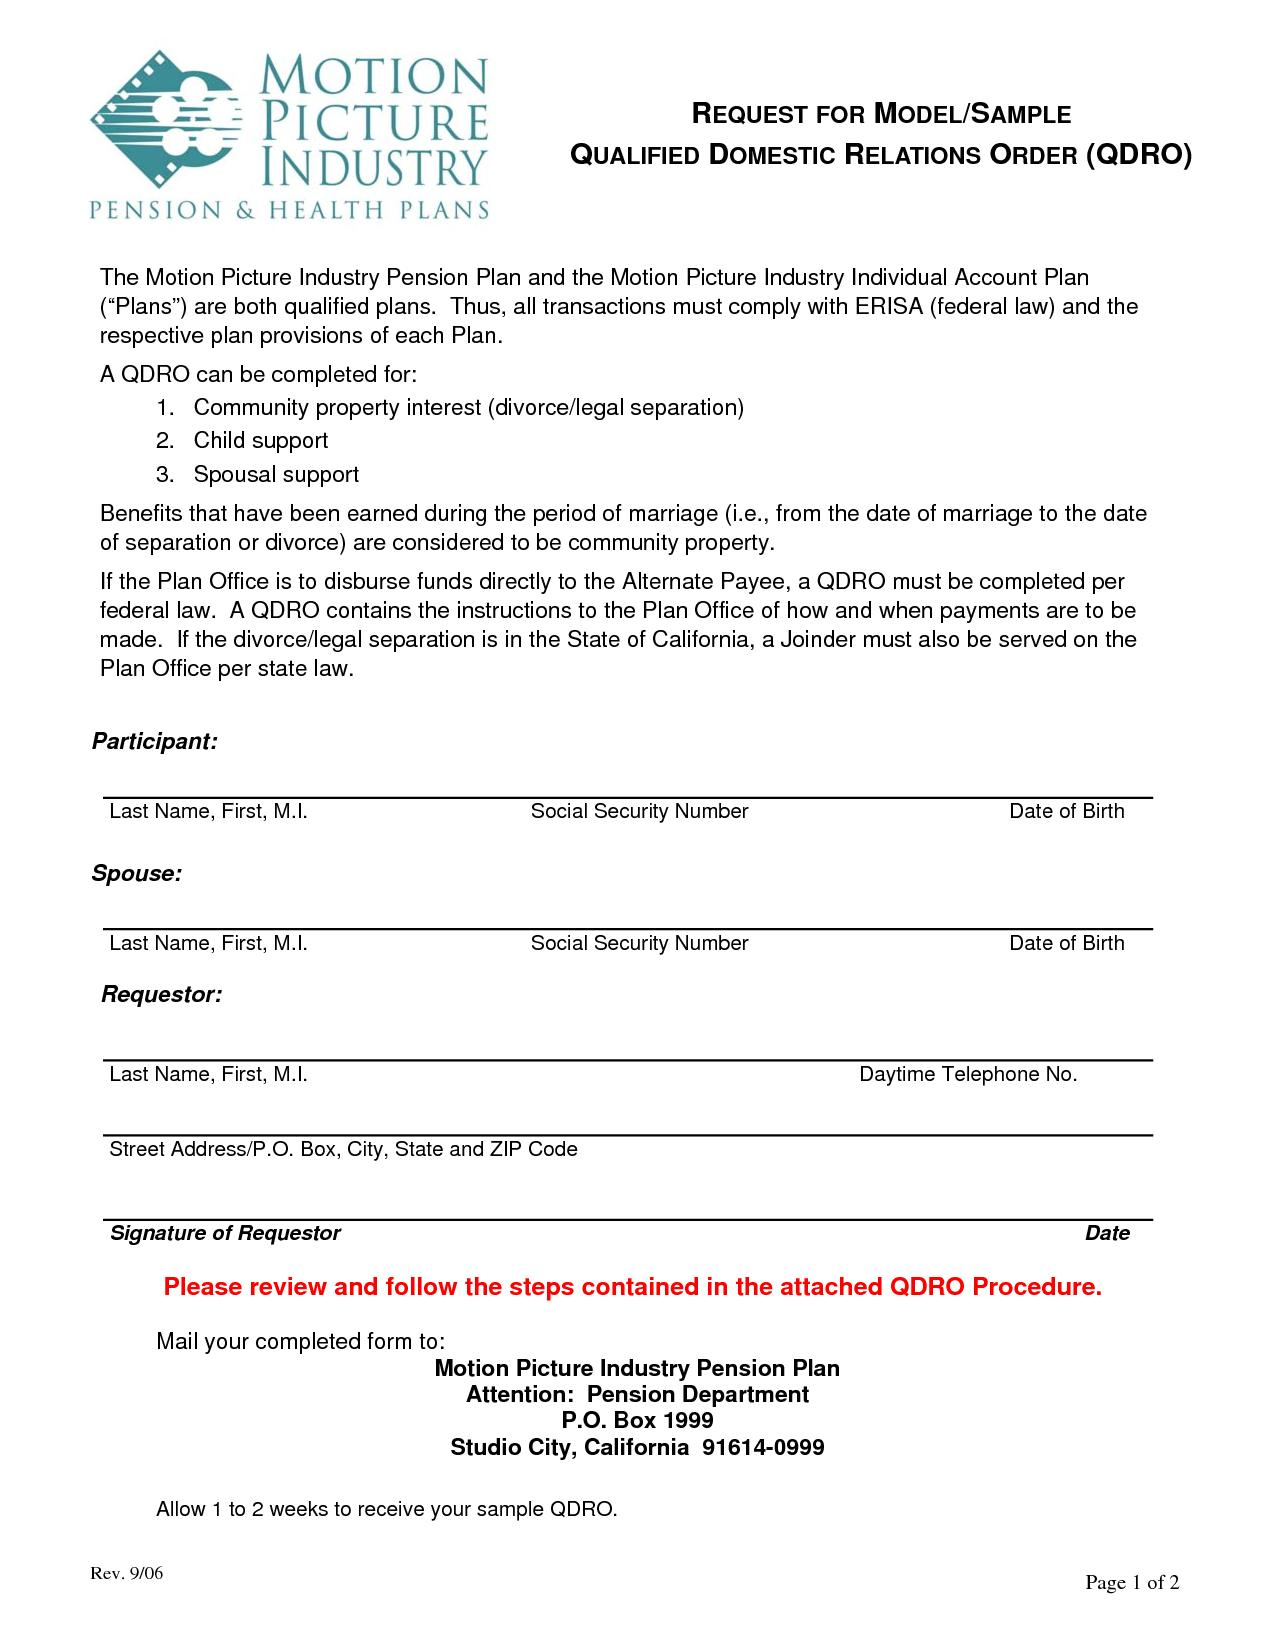 Qualified Domestic Relations Order Form New Jersey